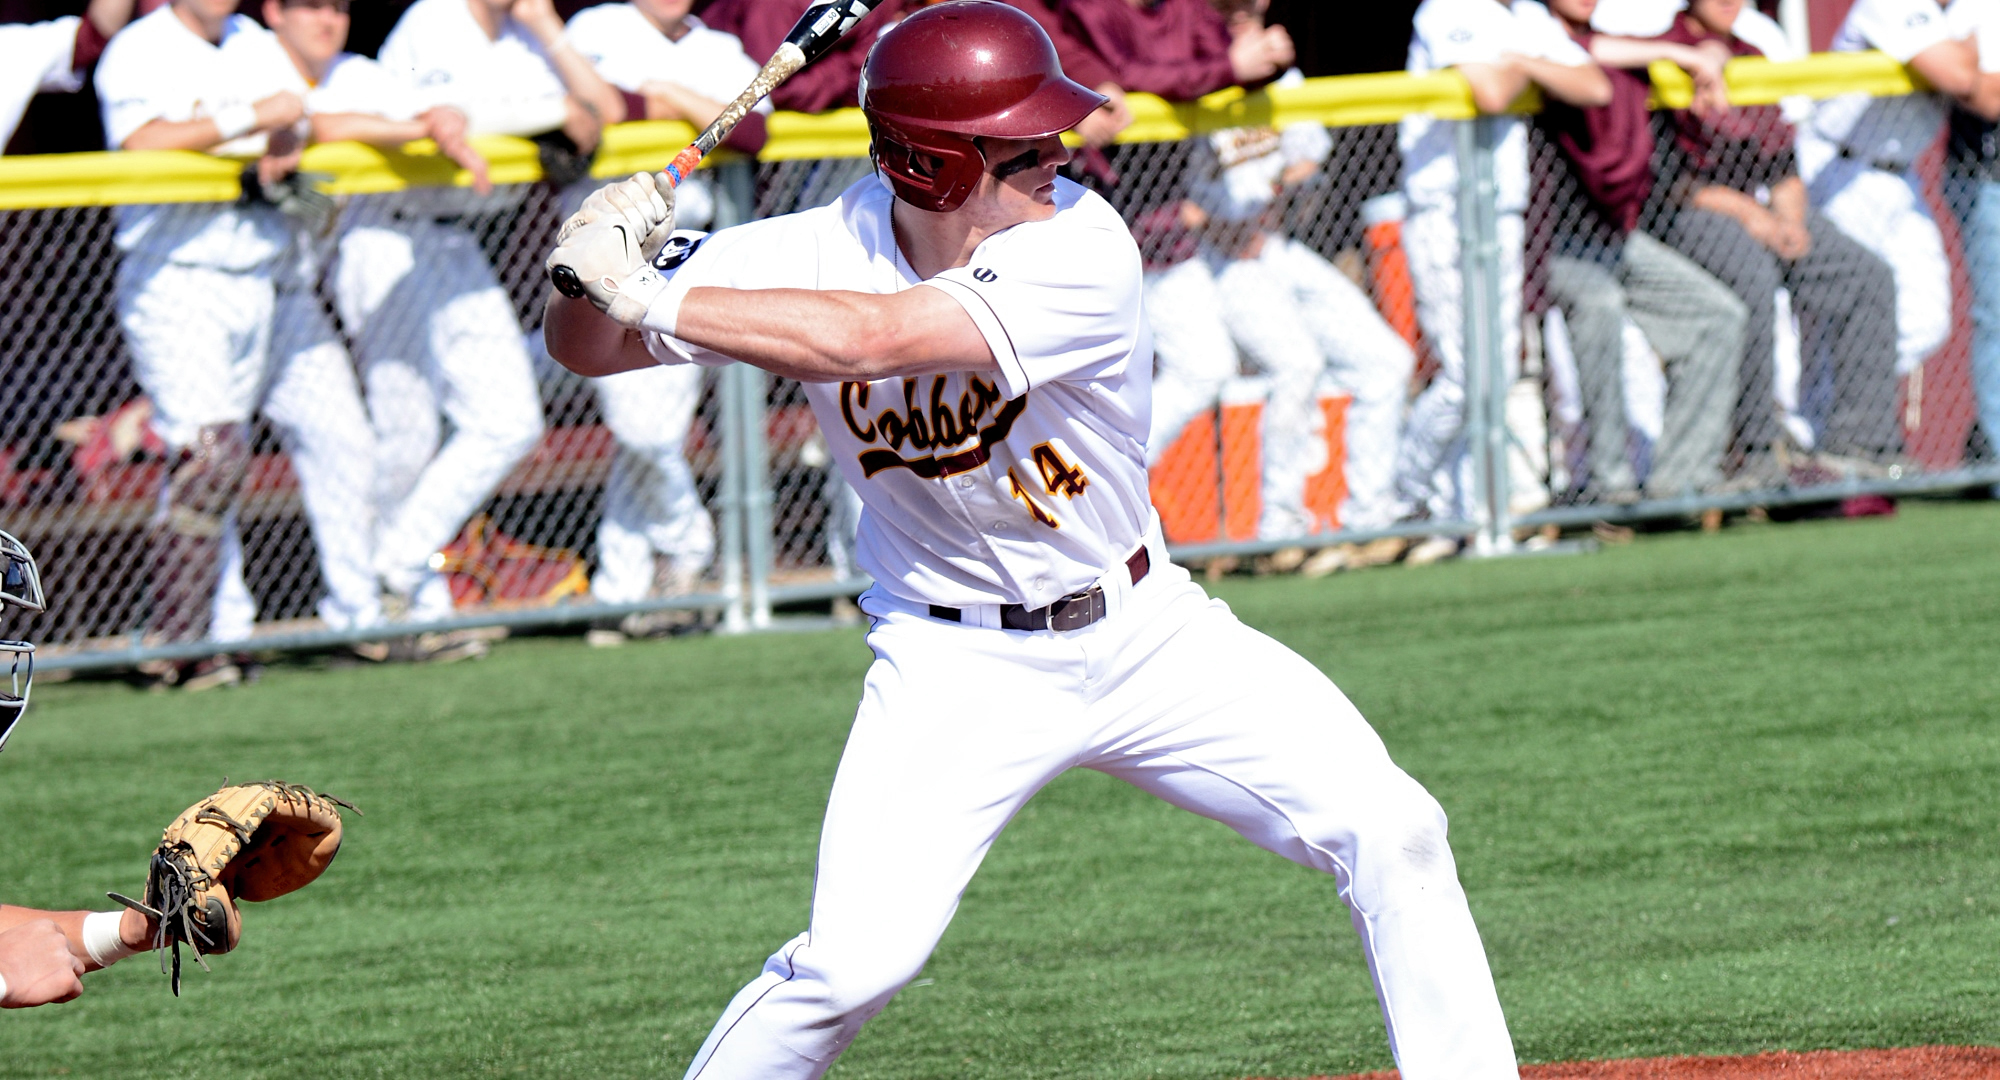 Junior Chad Johnson went 1-for-3 and drove in one of the Cobbers' four runs in the team's game against Augustana (Ill.).